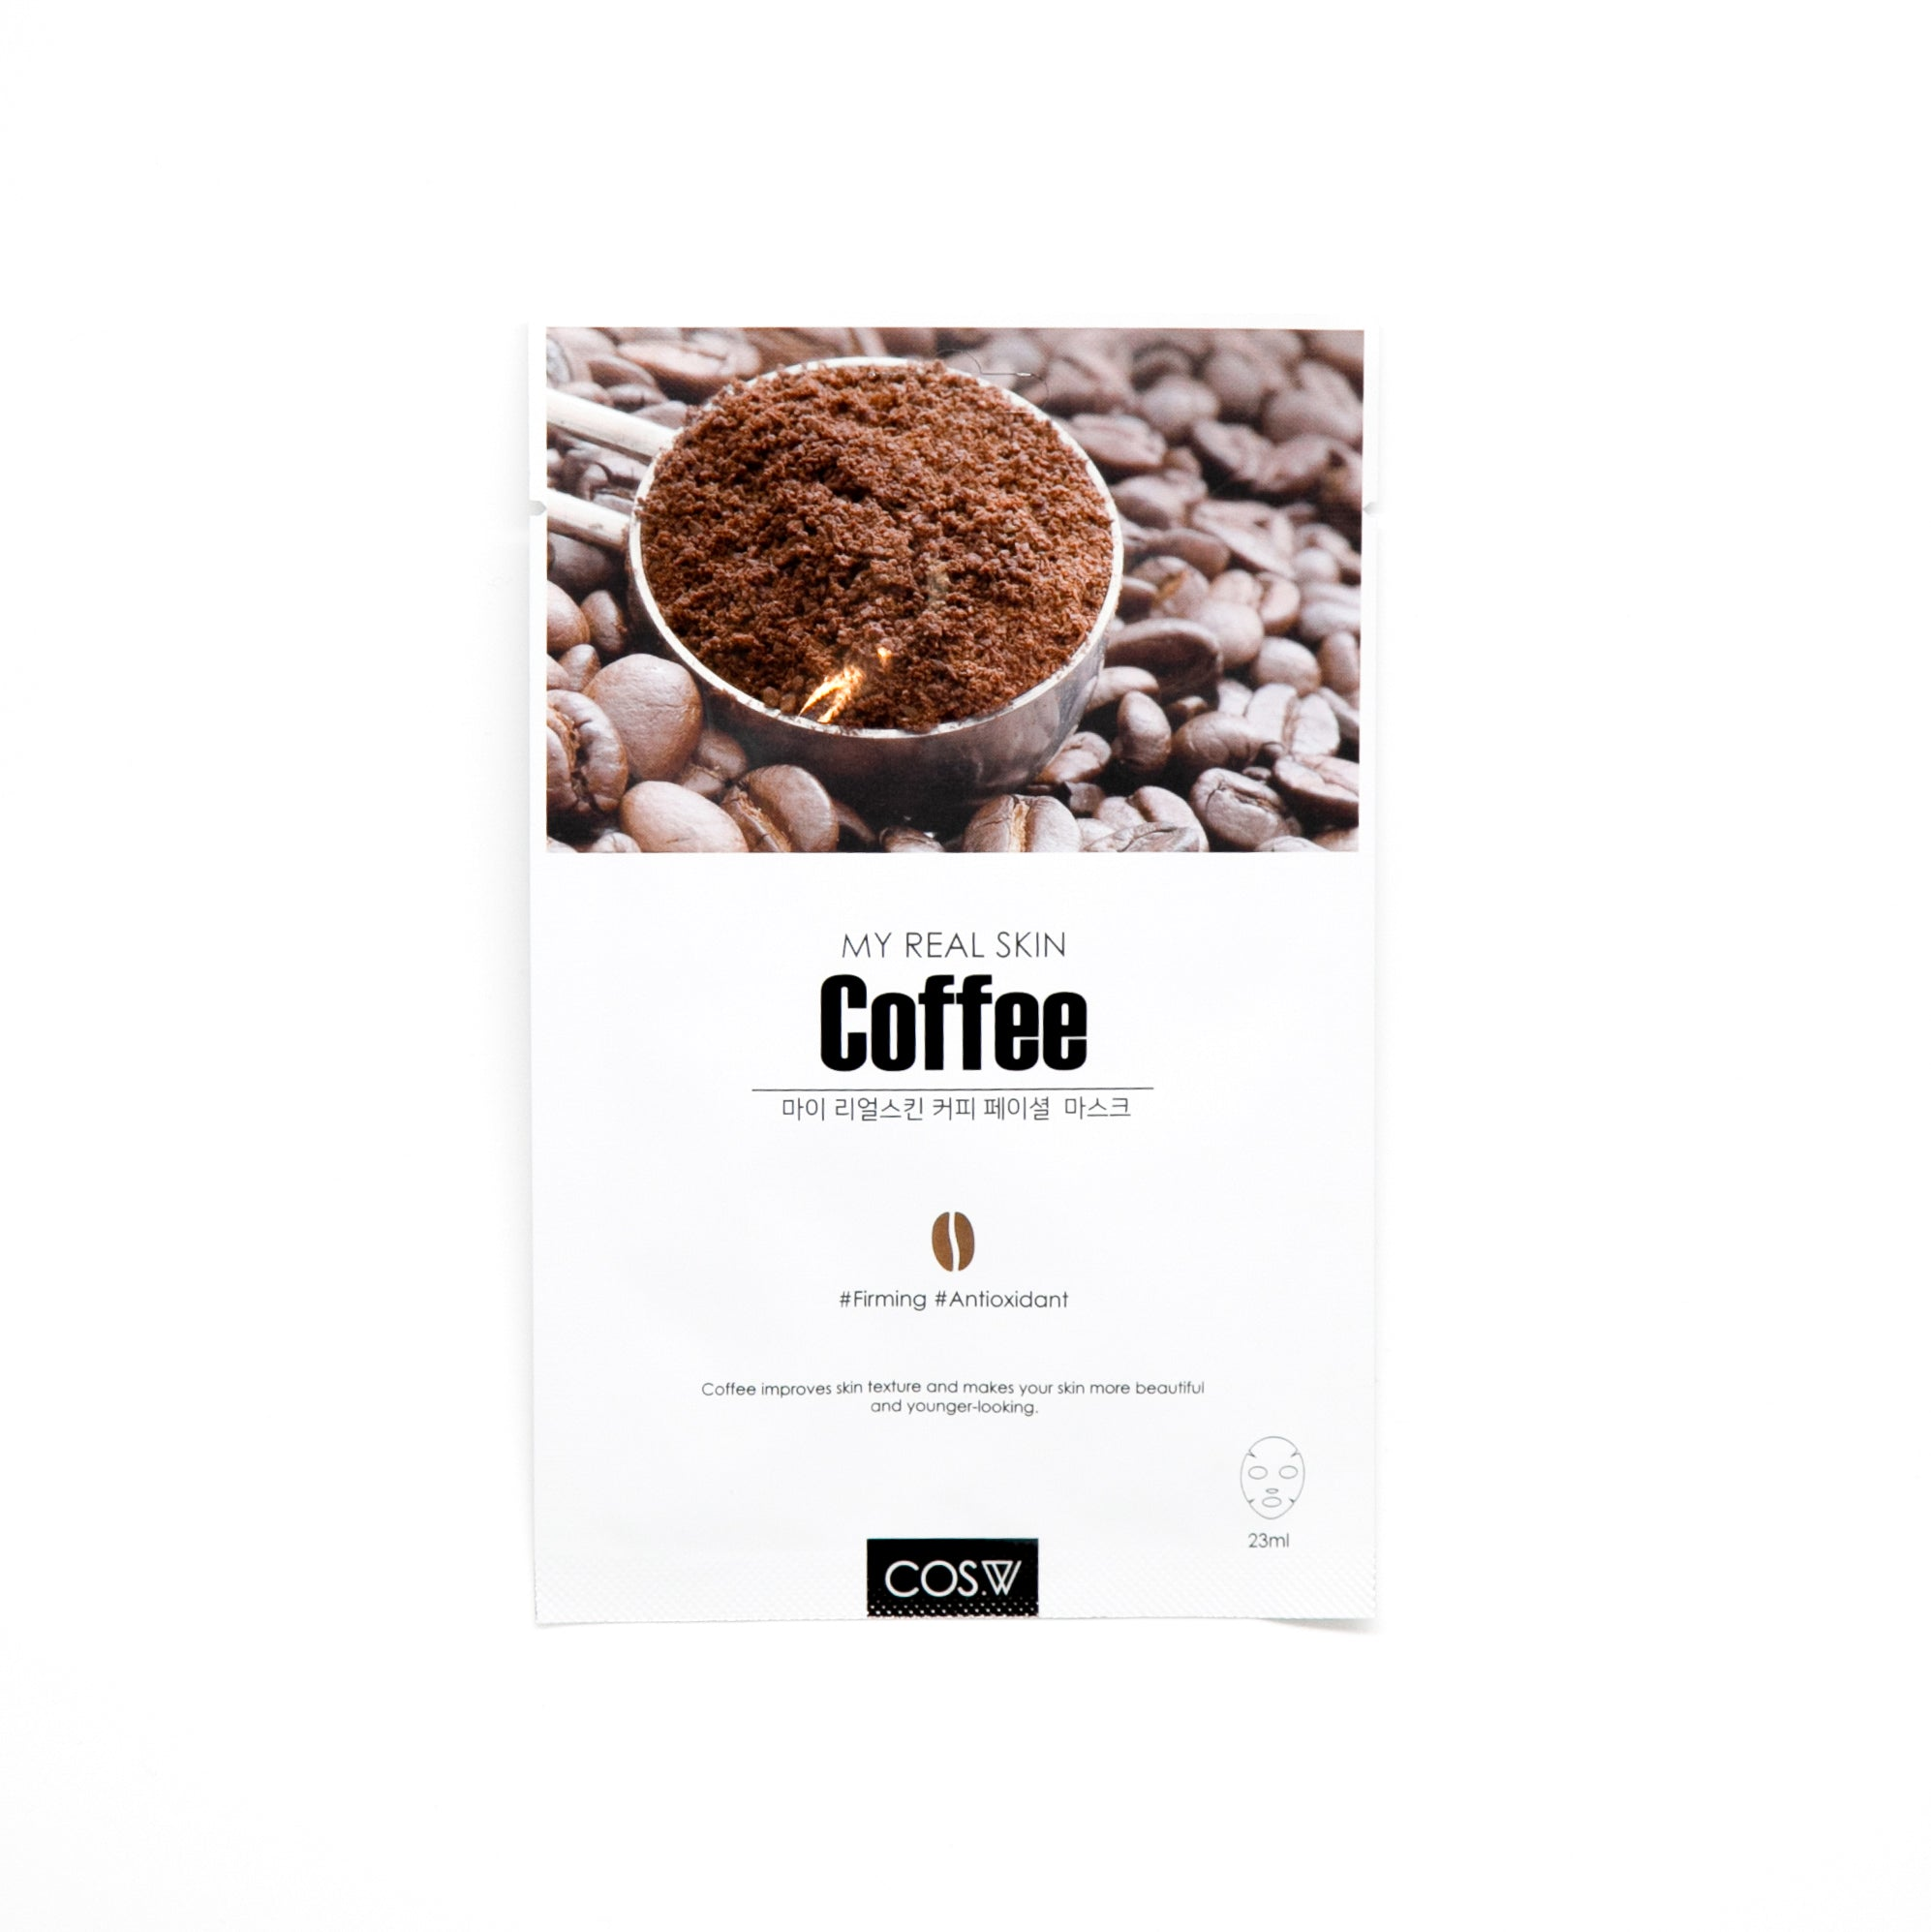 coffee extract infused facial sheet mask helps to tighten and depuff skin